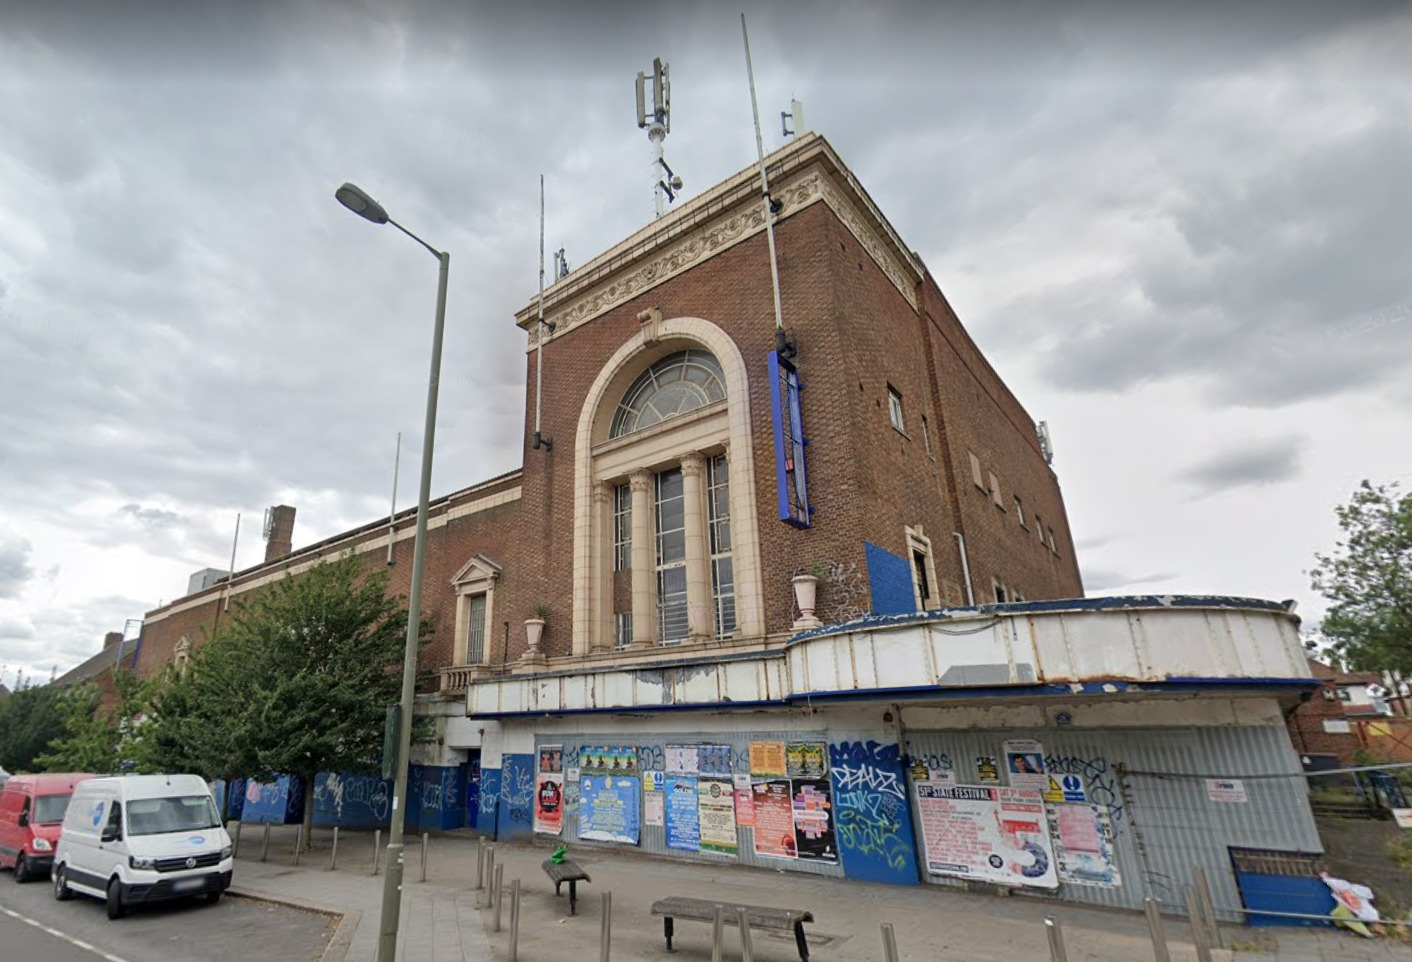 Council to assess plans for new homes at site of 1930s cinema